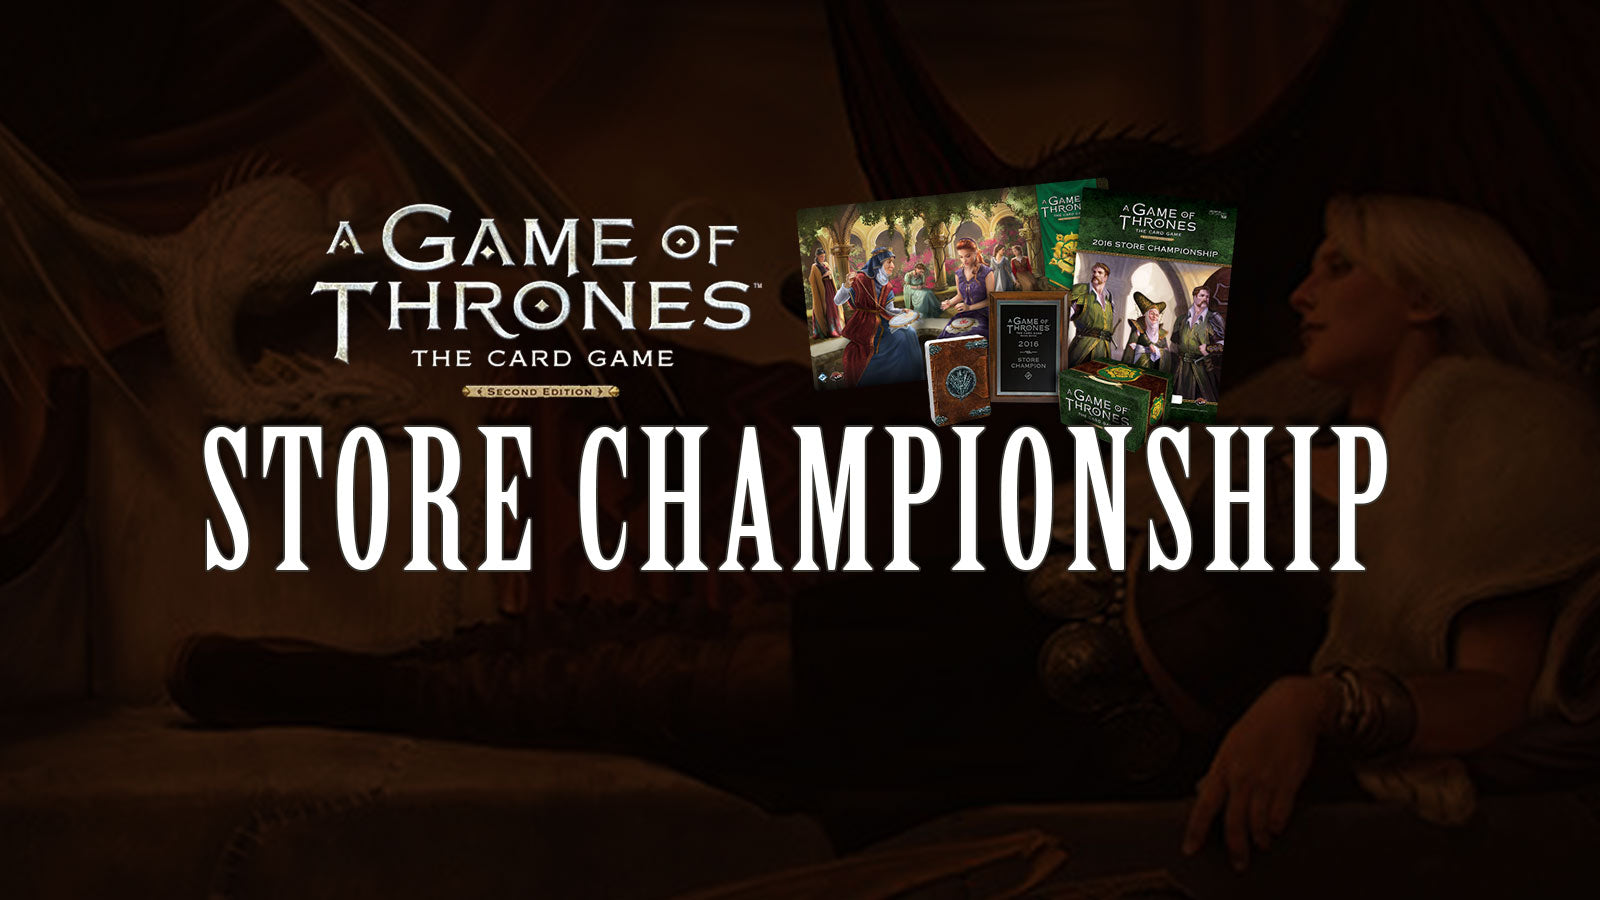 Game of Thrones Card Game Store Championship